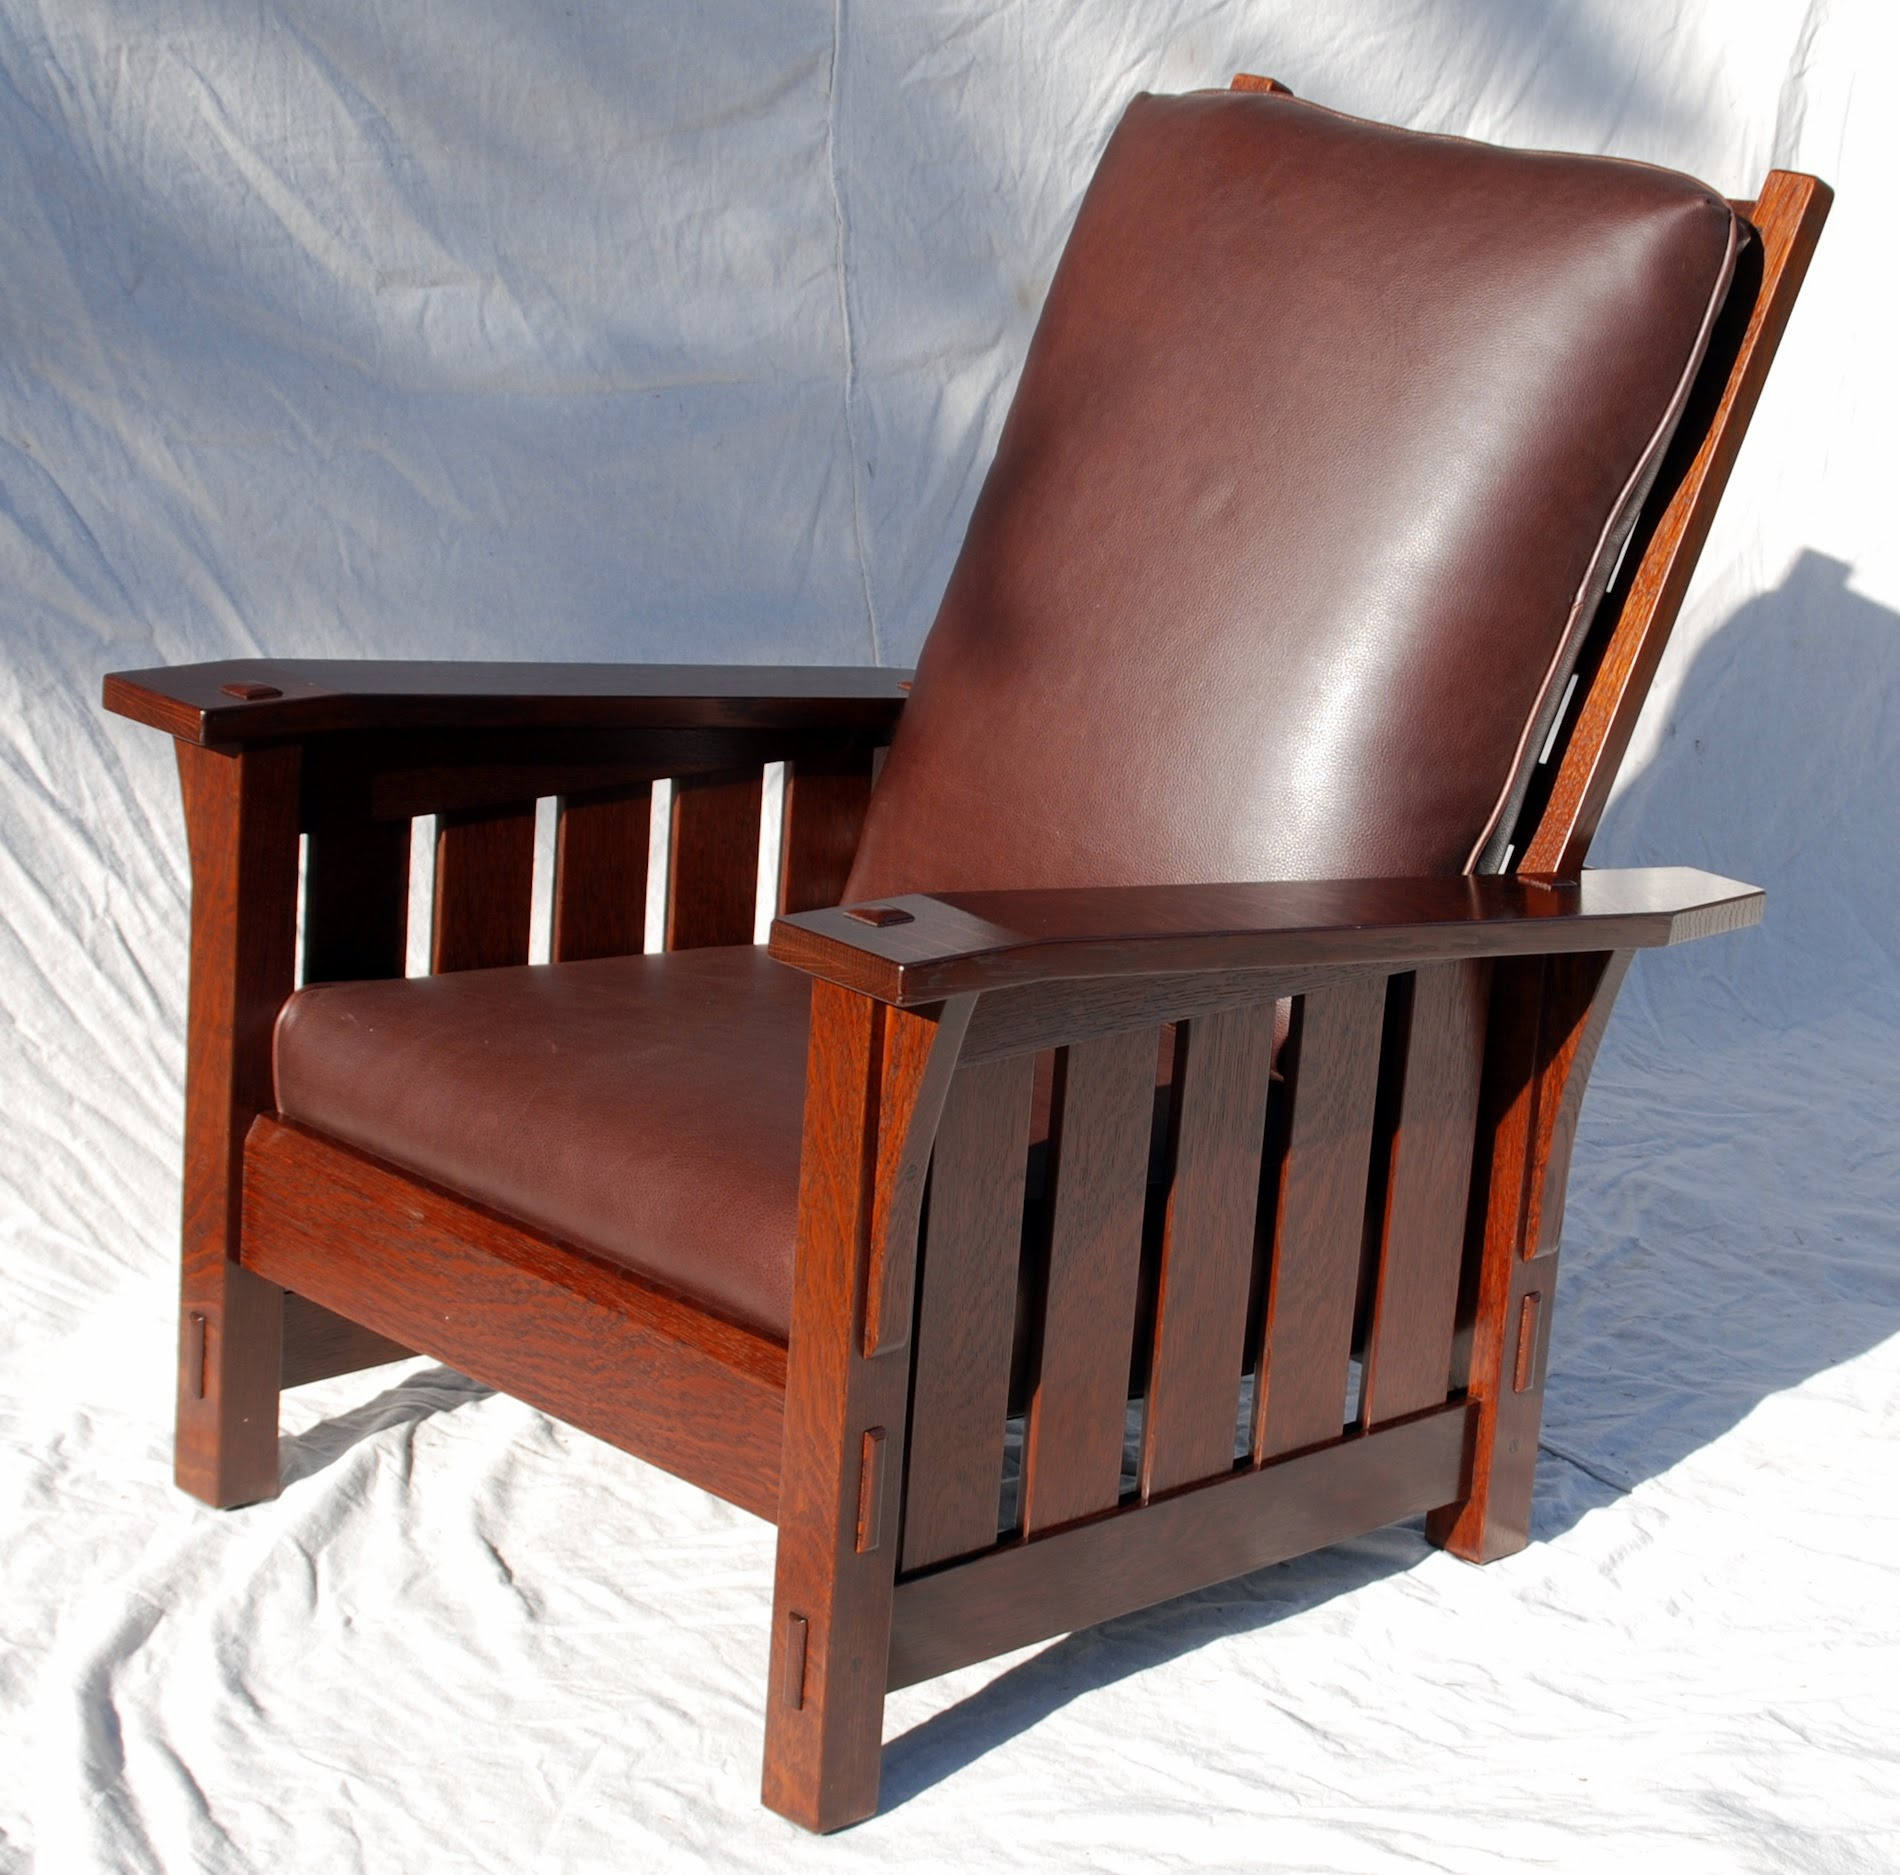 Stickley Chair Voorhees Craftsman Mission Oak Furniture Gustav Stickley